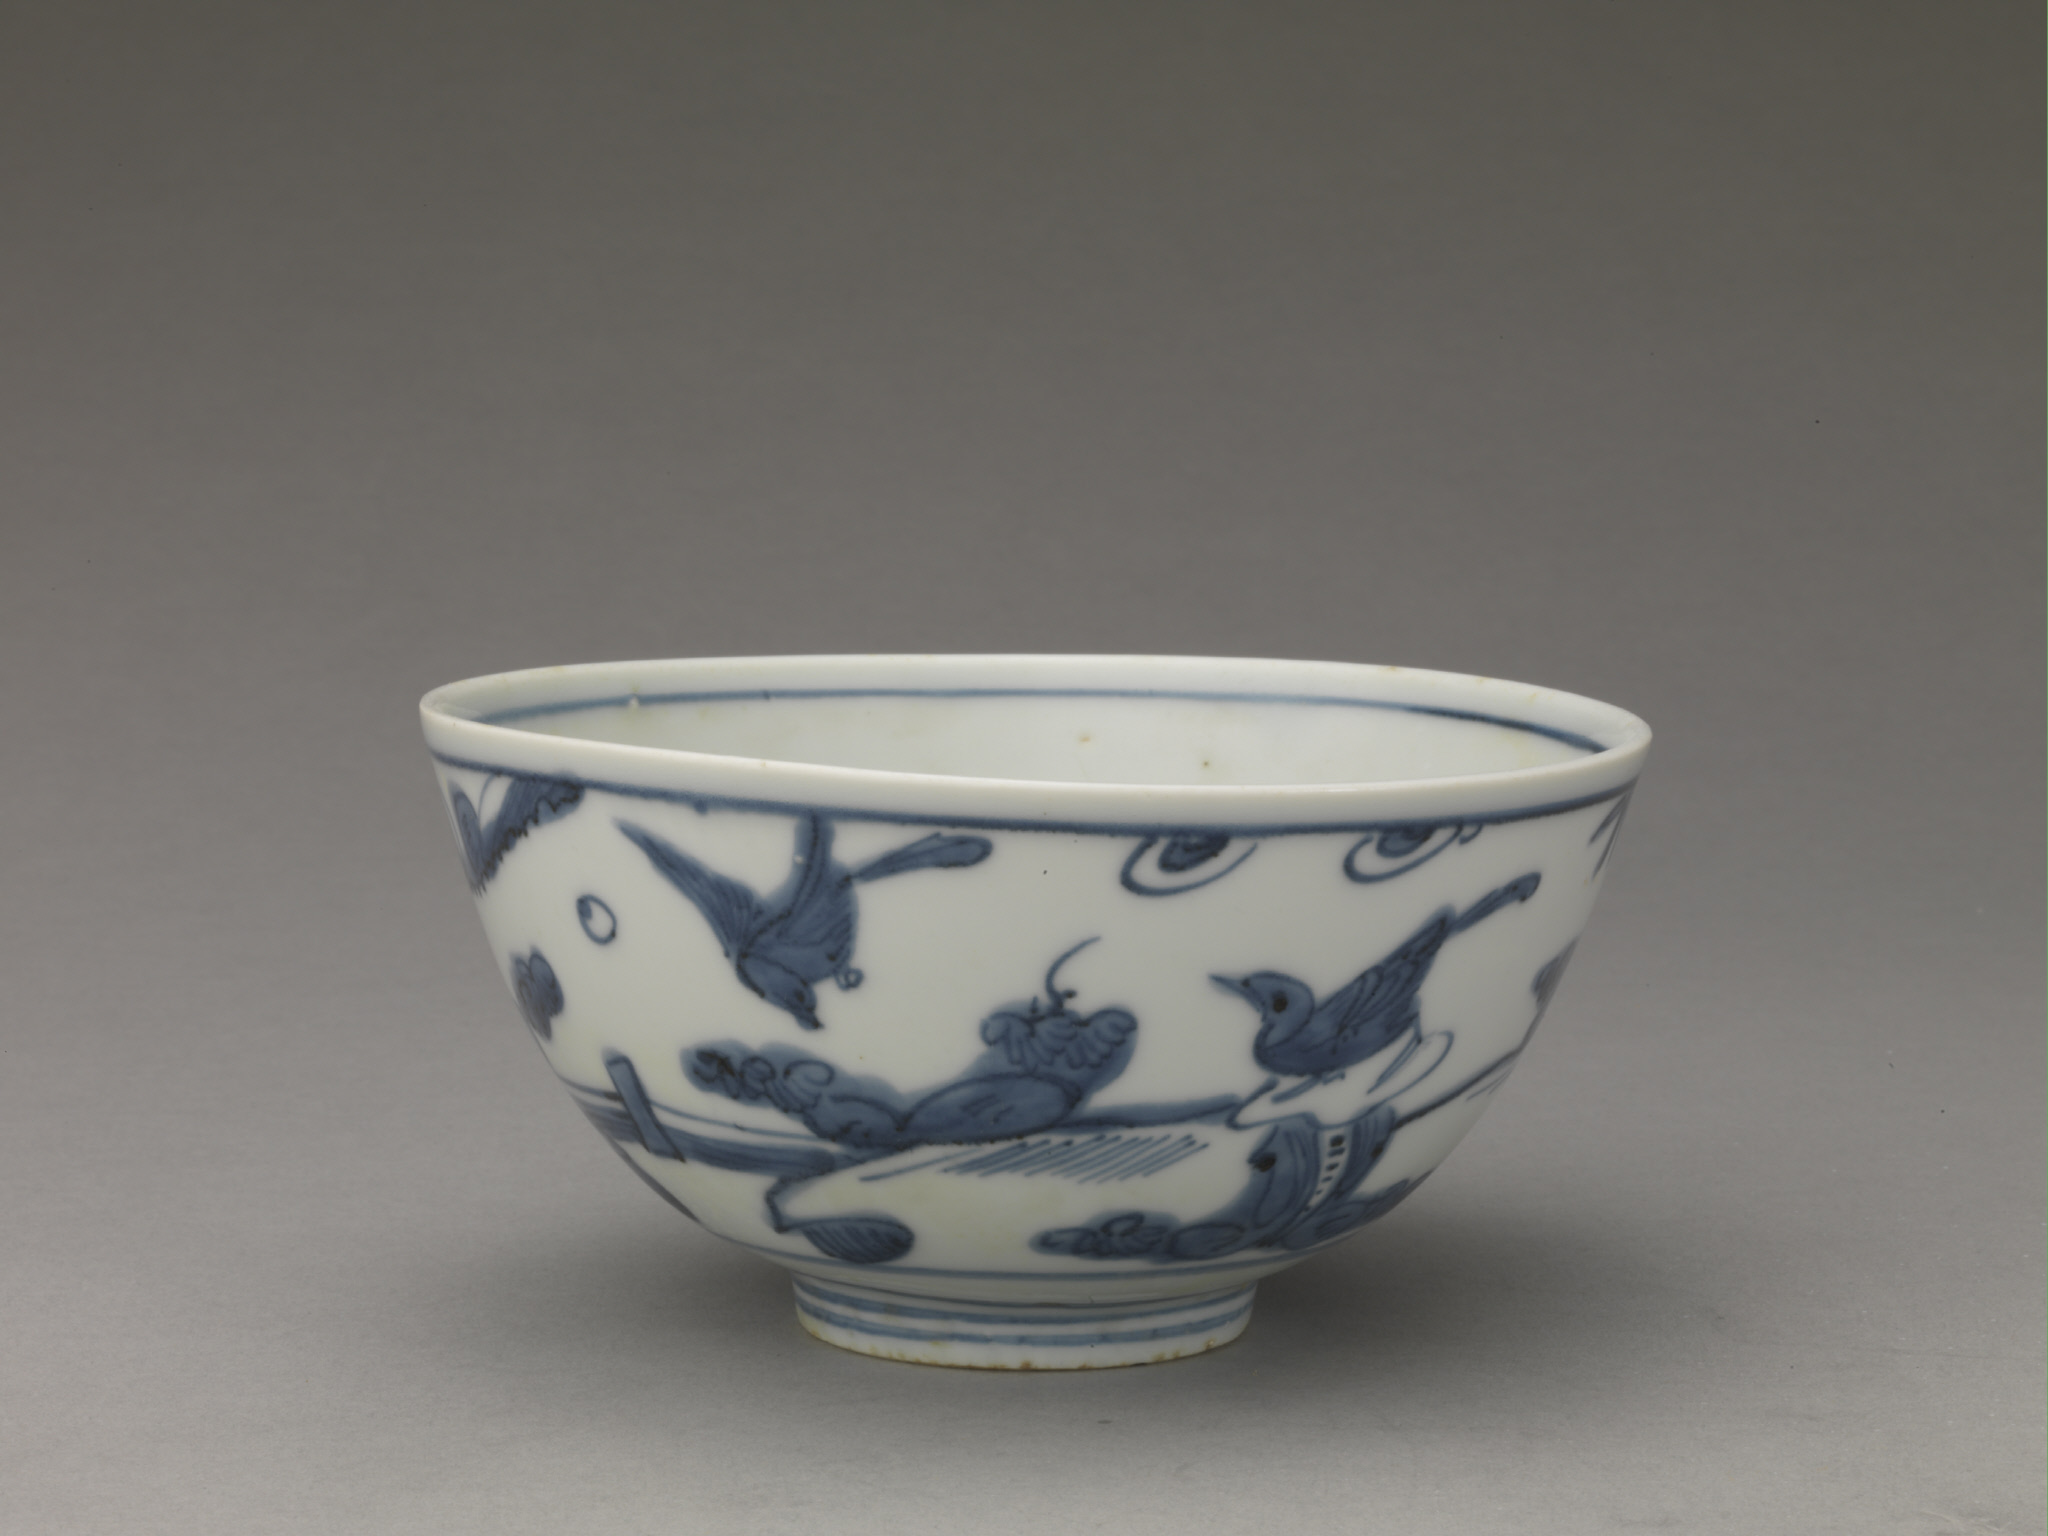 ee163f126ff4f0518806ccaab4ee3dd5 Ceramic  collections in  The Palace Museum - shengjiang  ceramic  factory   porcelain art hand basin wash sink